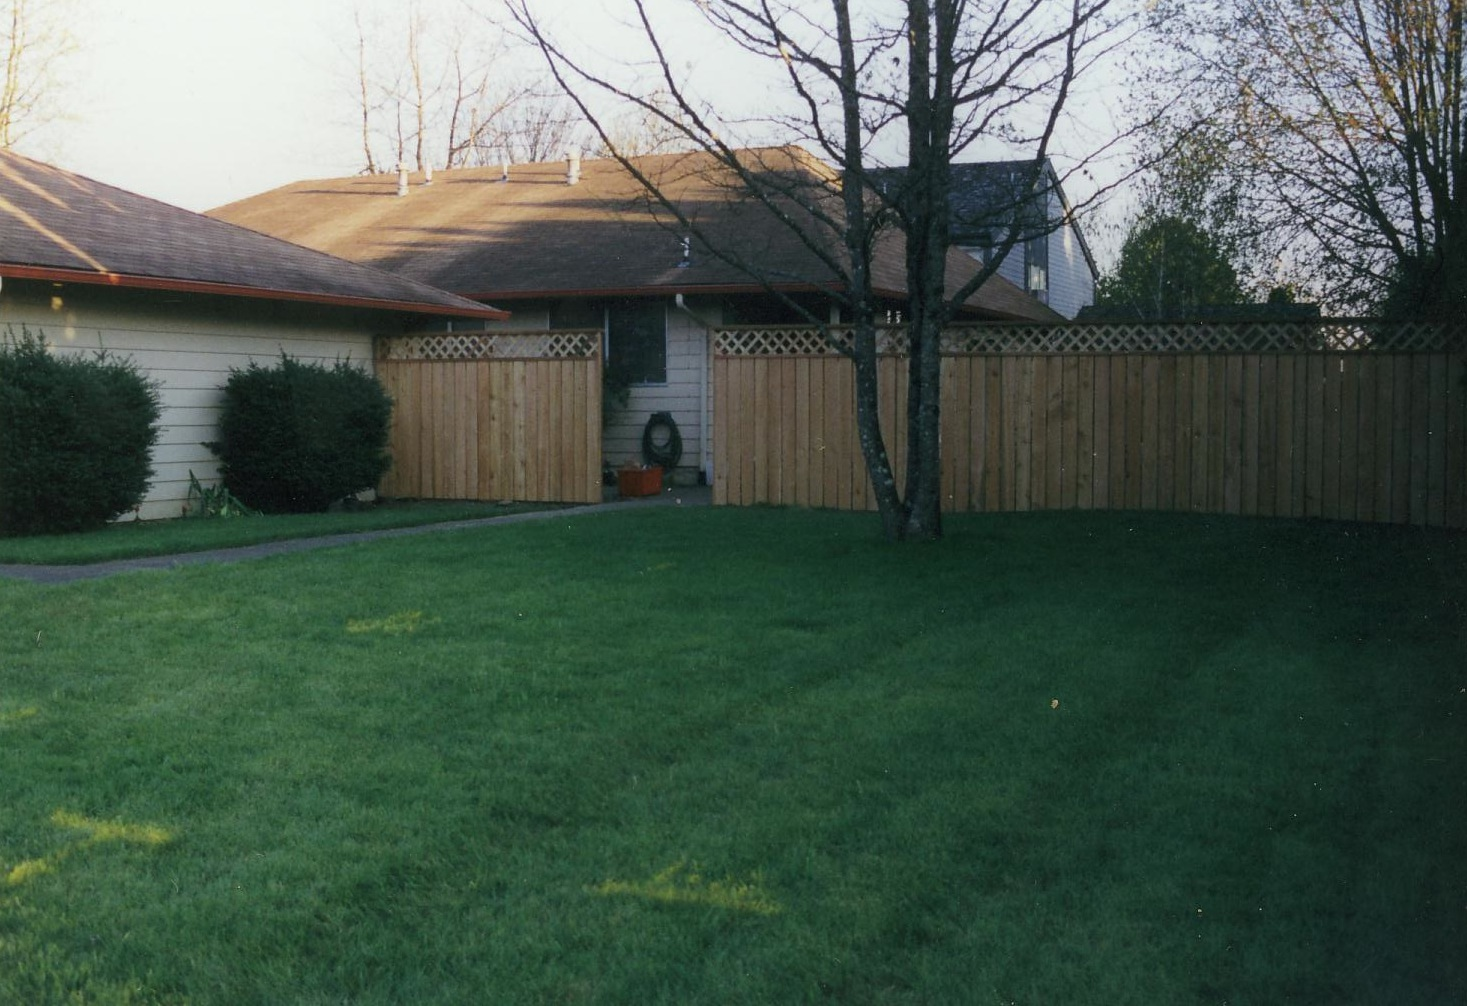 Nice to have more privacy, but still a lot of lawn to mow, you think?